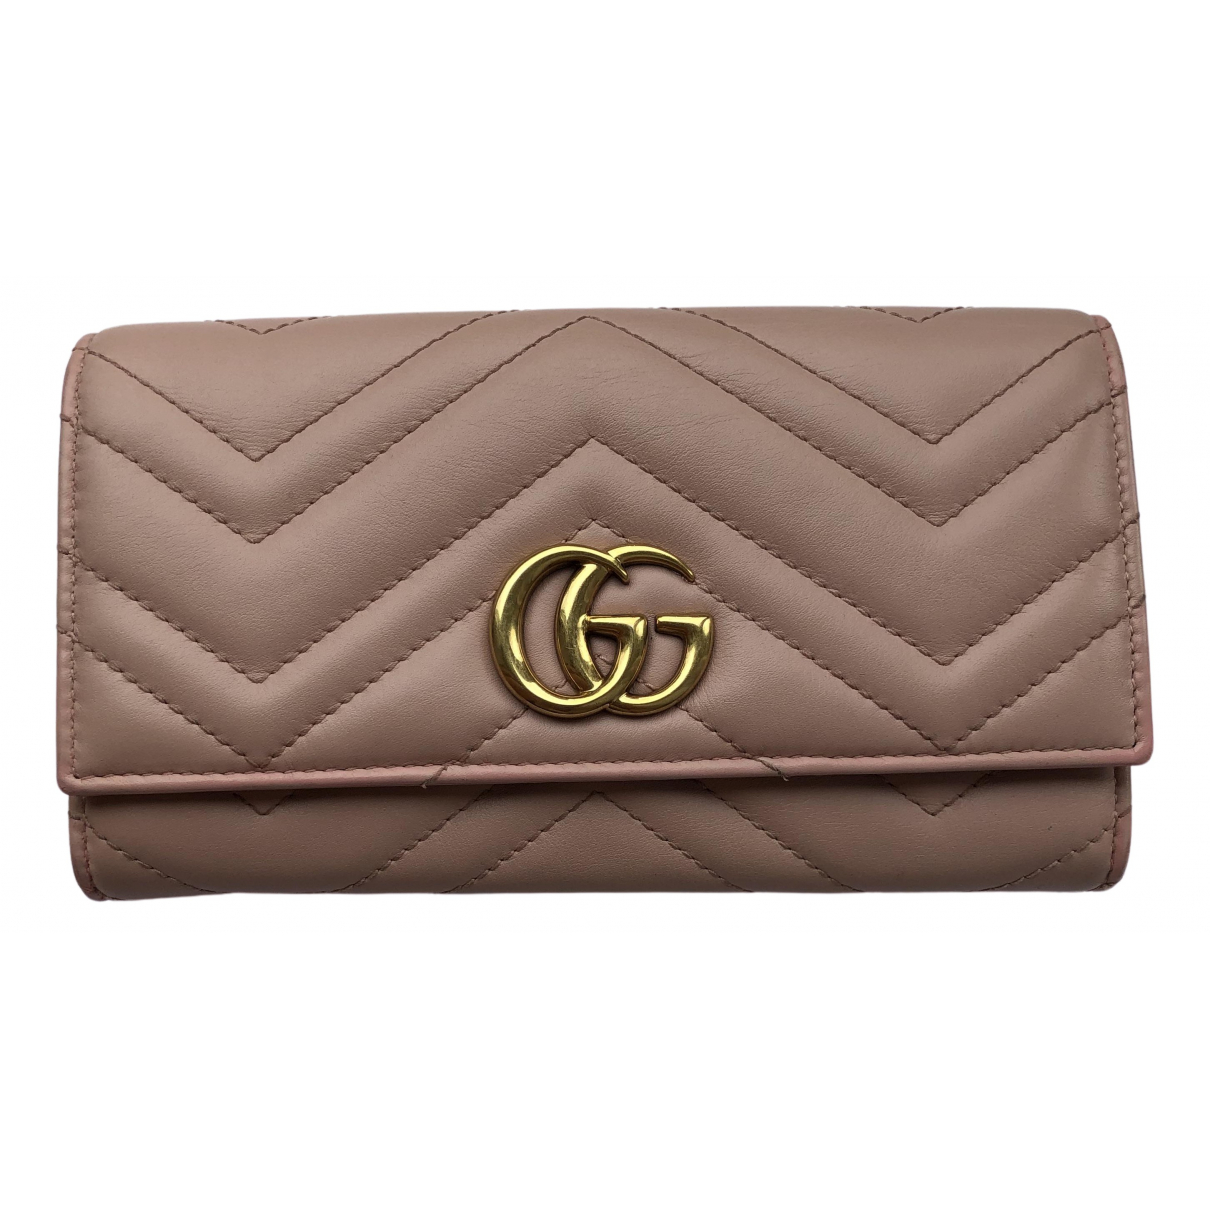 Gucci Marmont Pink Leather wallet for Women \N